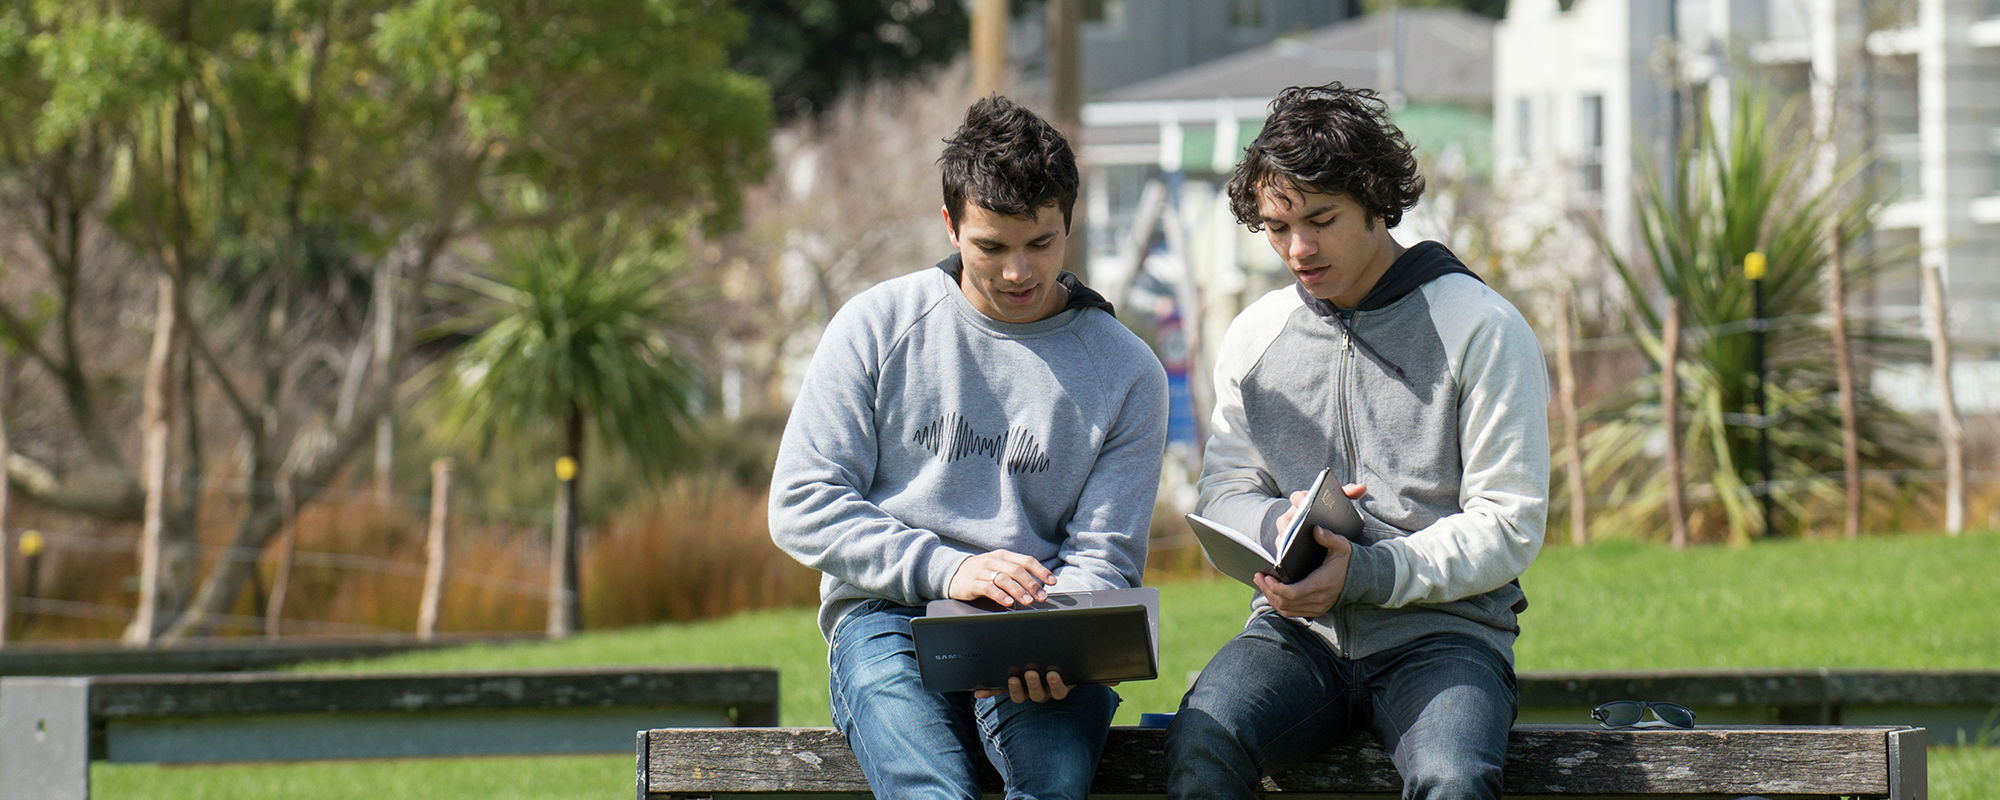 Two students working together during a discussion sitting on a bench in Waitangi park